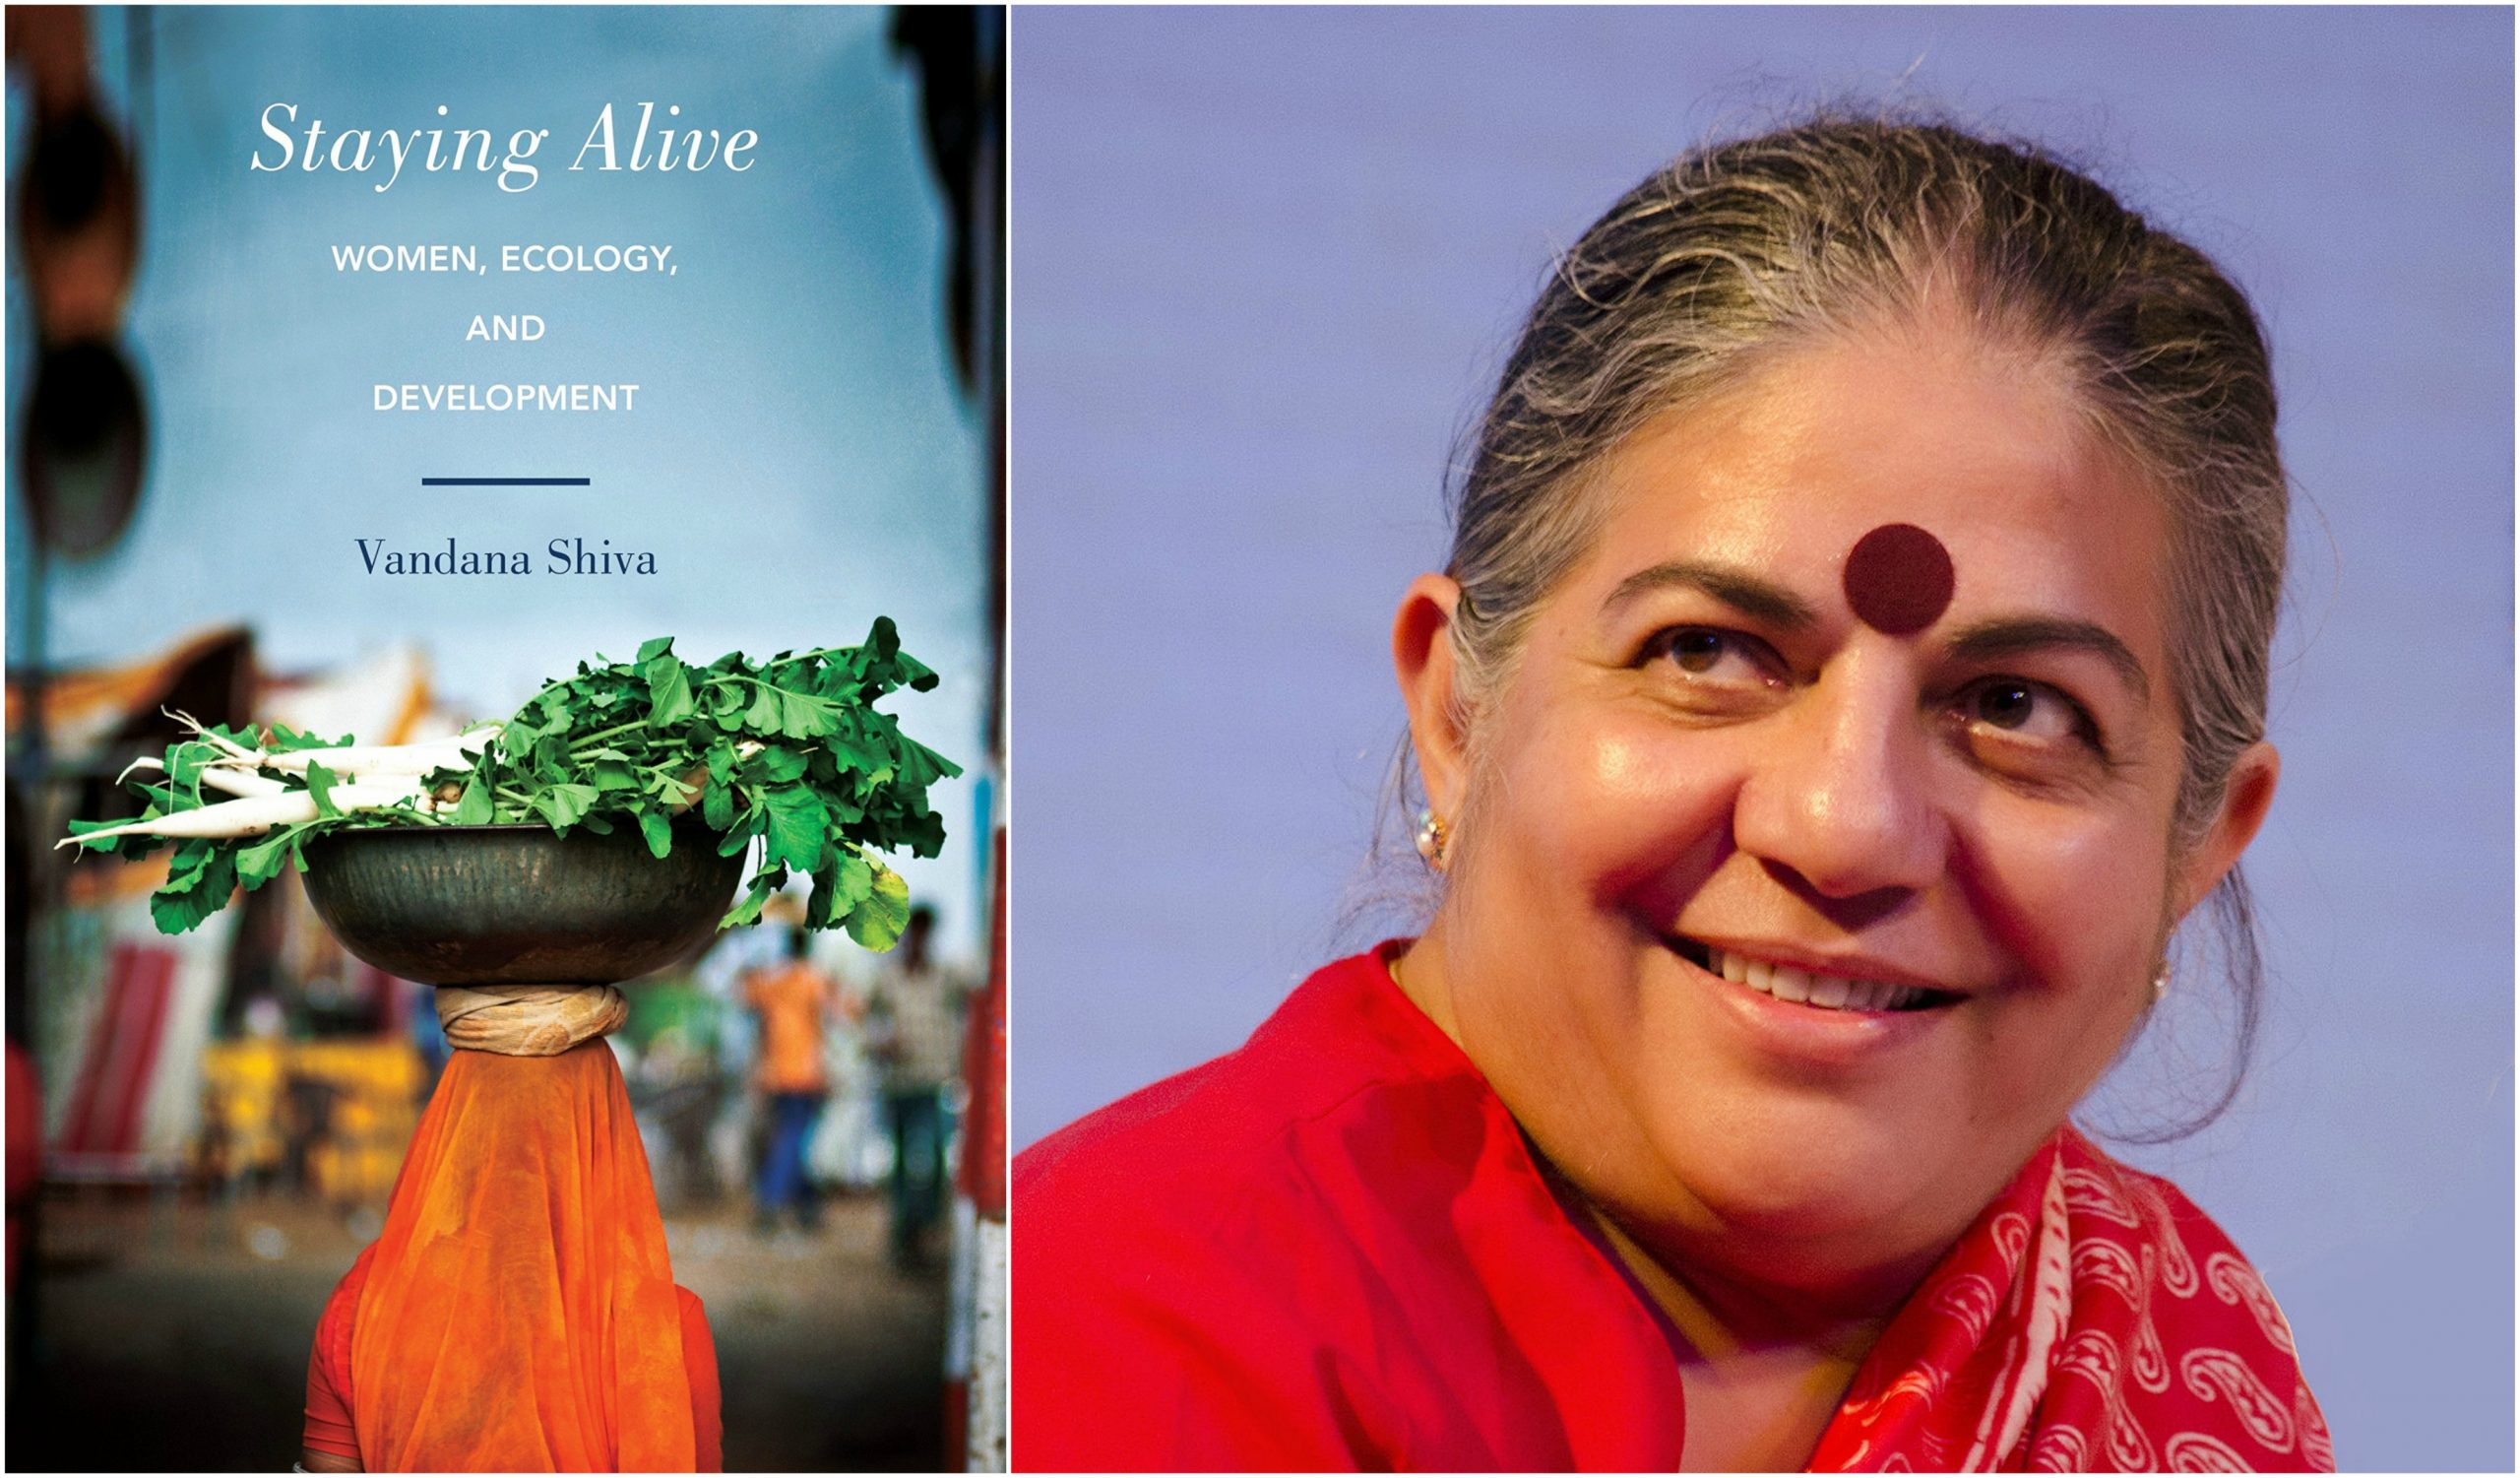 Book Review: Staying Alive By Vandana Shiva